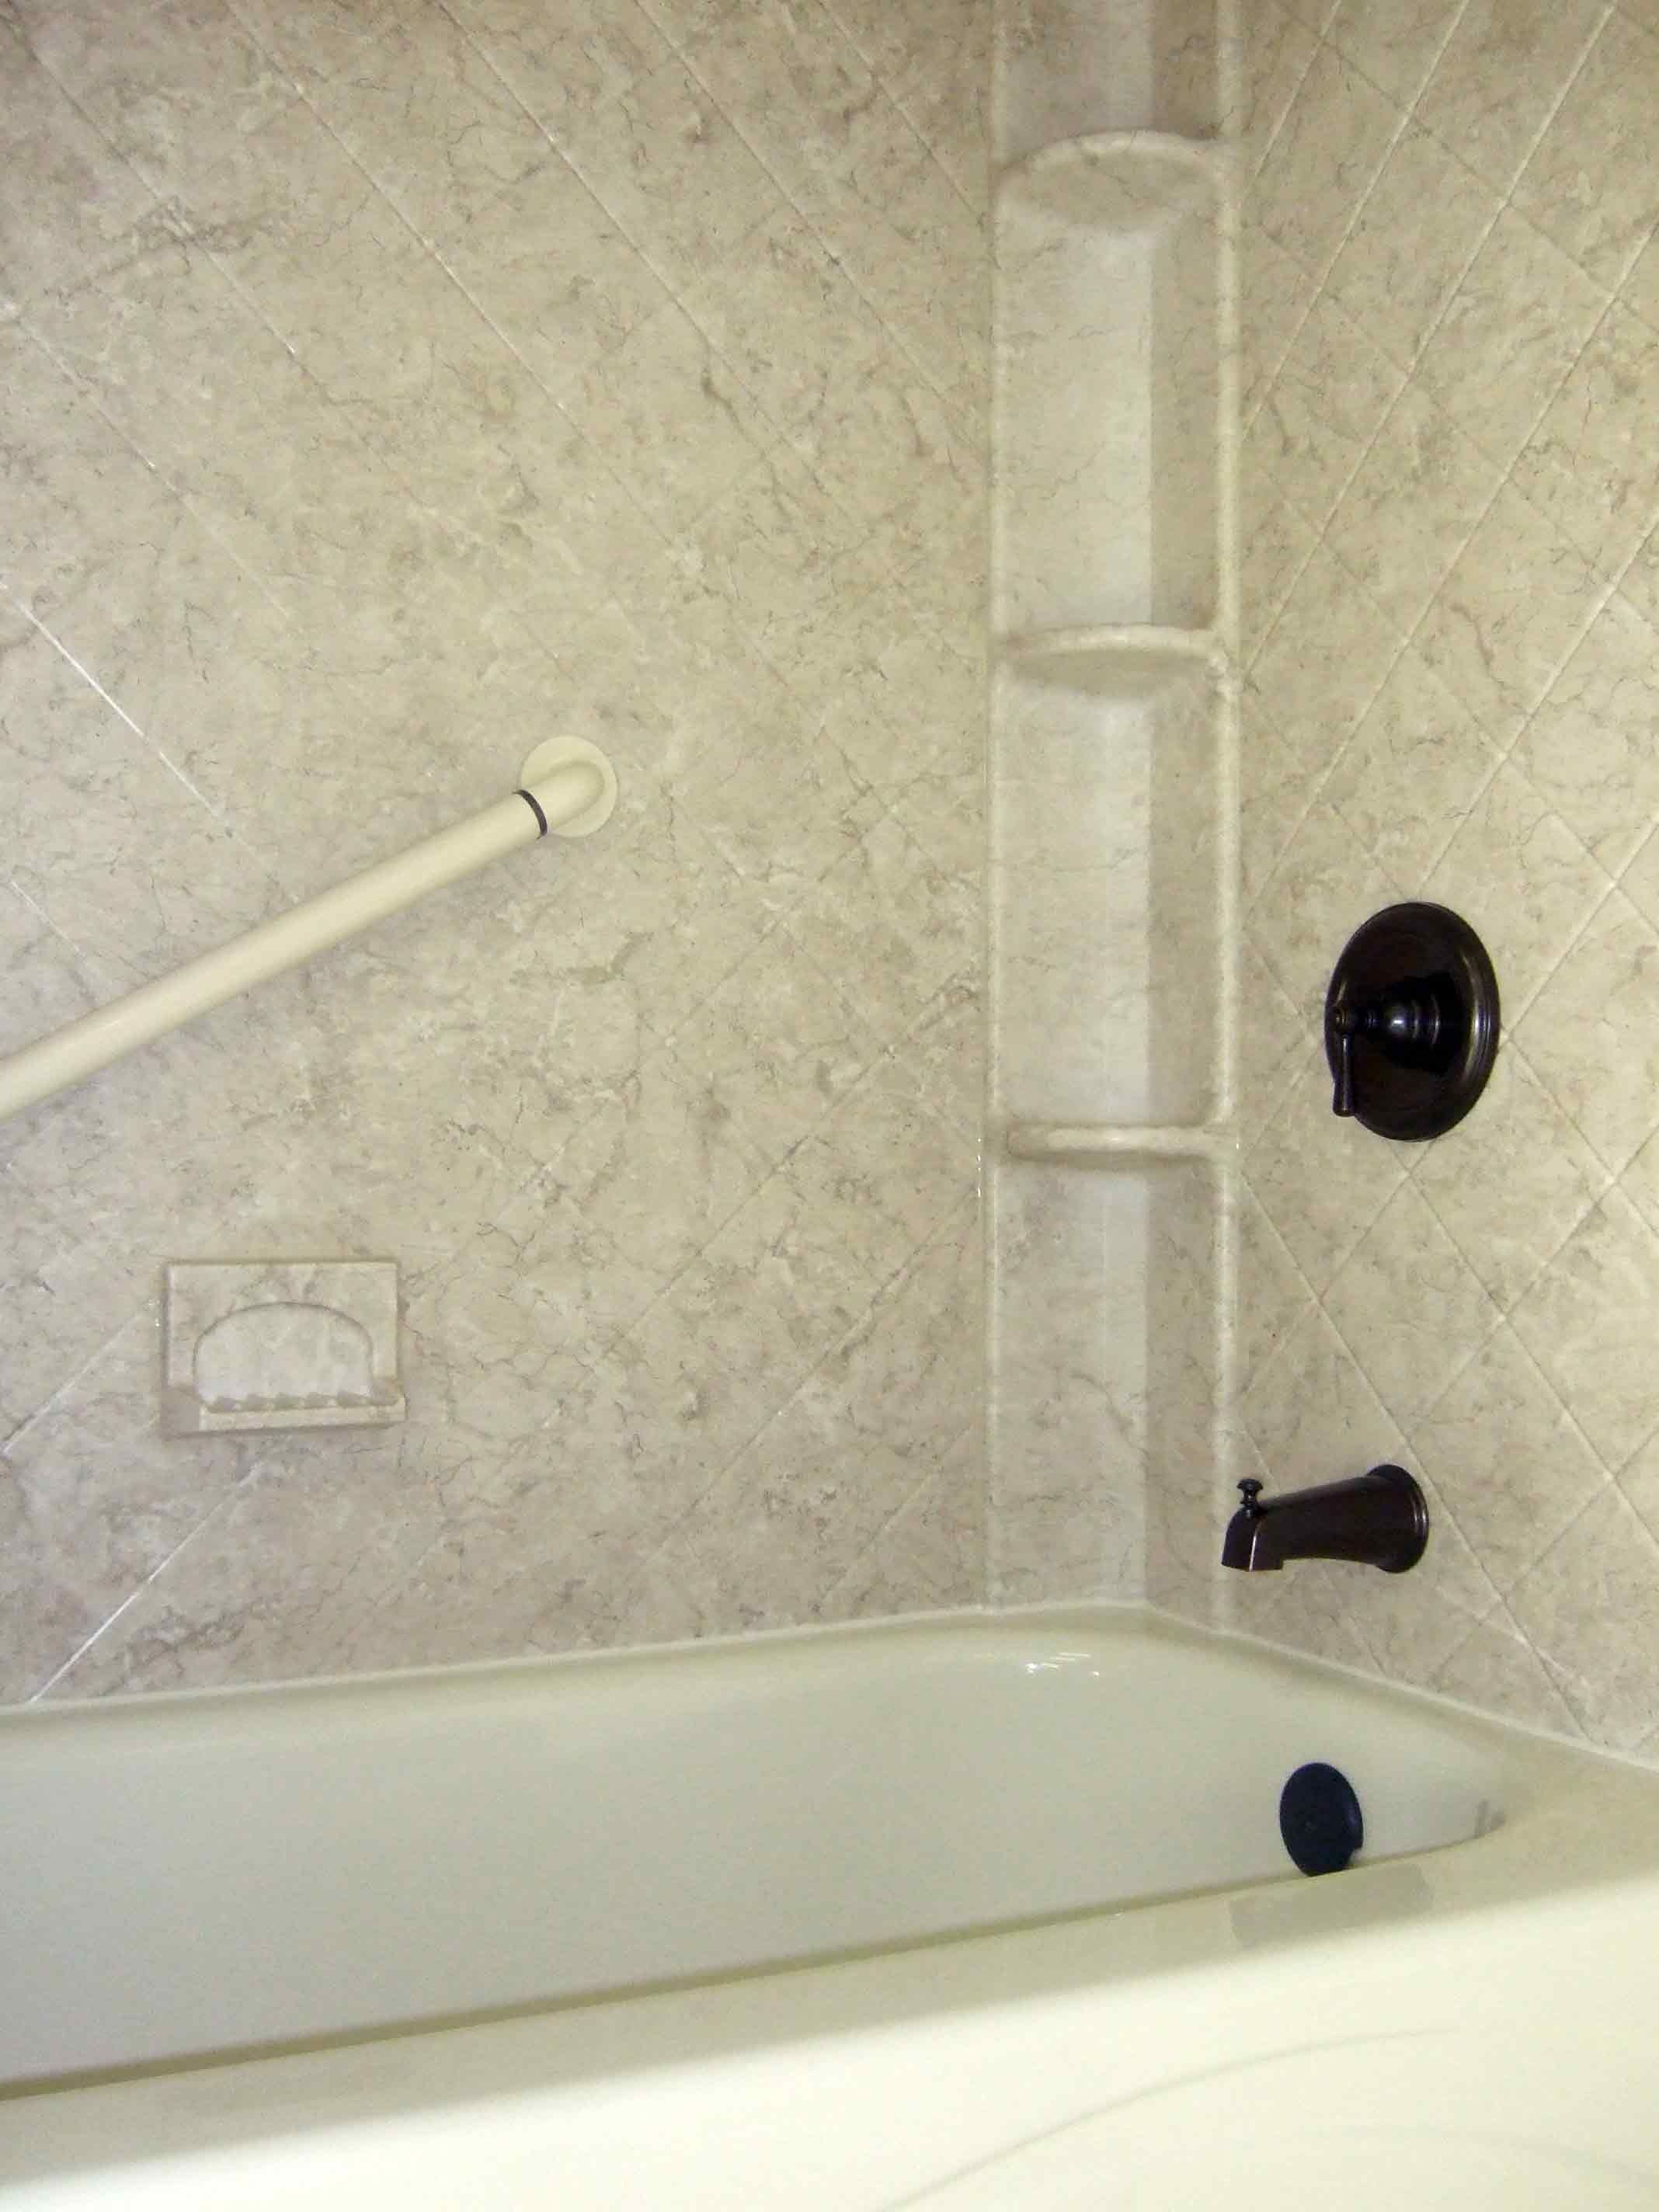 Bathroom Shower Caddy Acrylic Shower Walls With Breccia Pattern And Shower Caddy